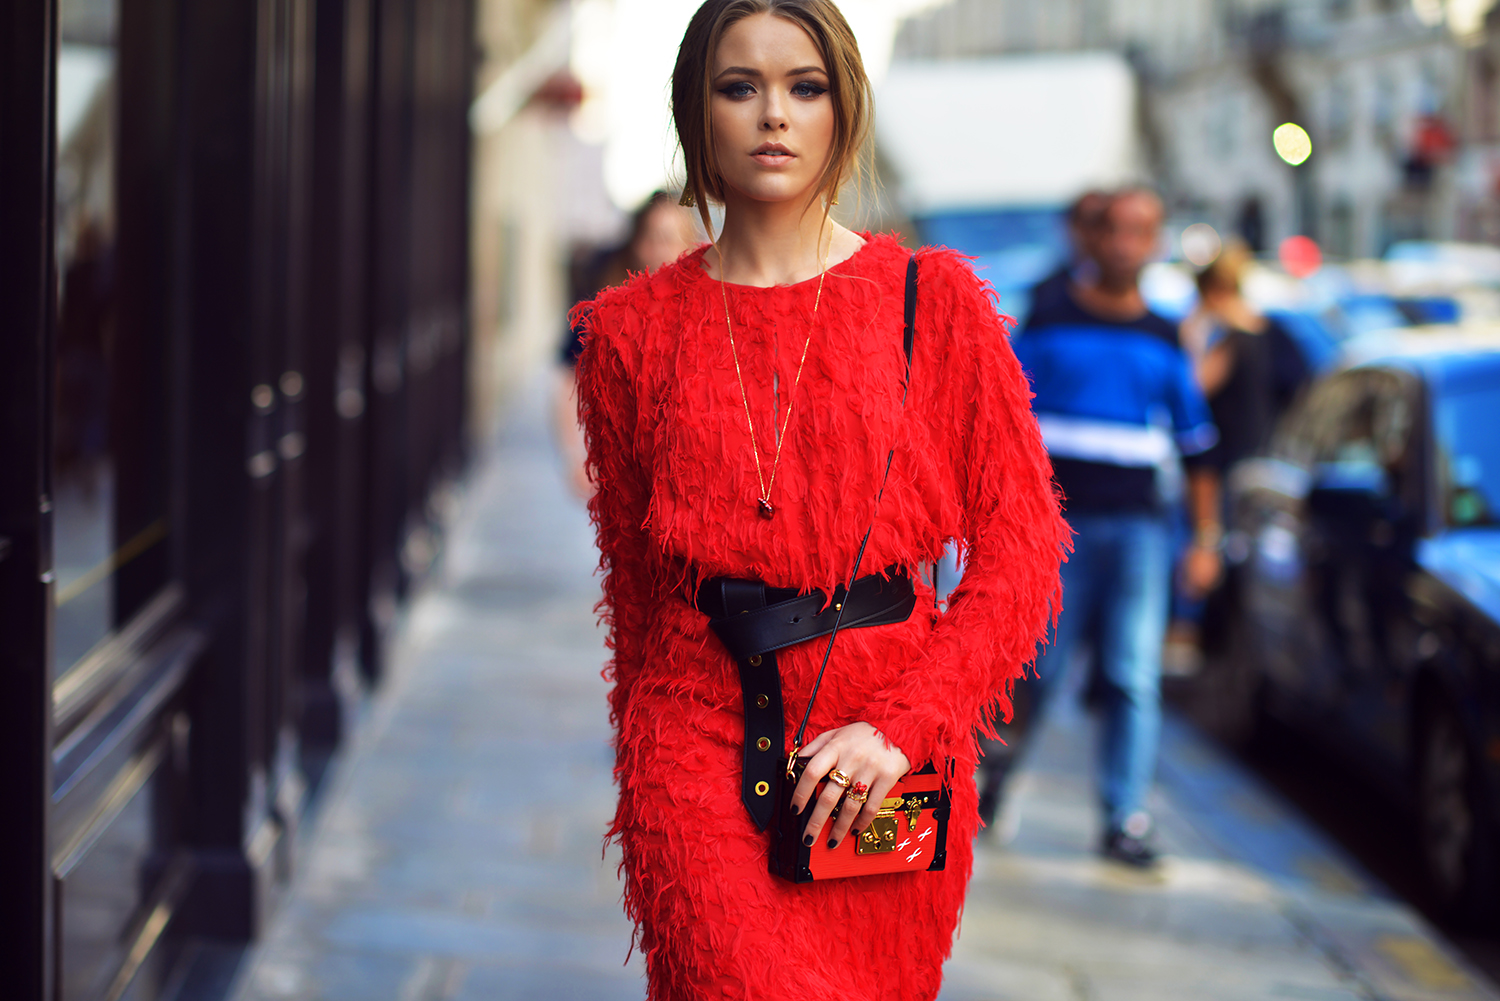 THE GIRL IN THE RED DRESS | Kayture